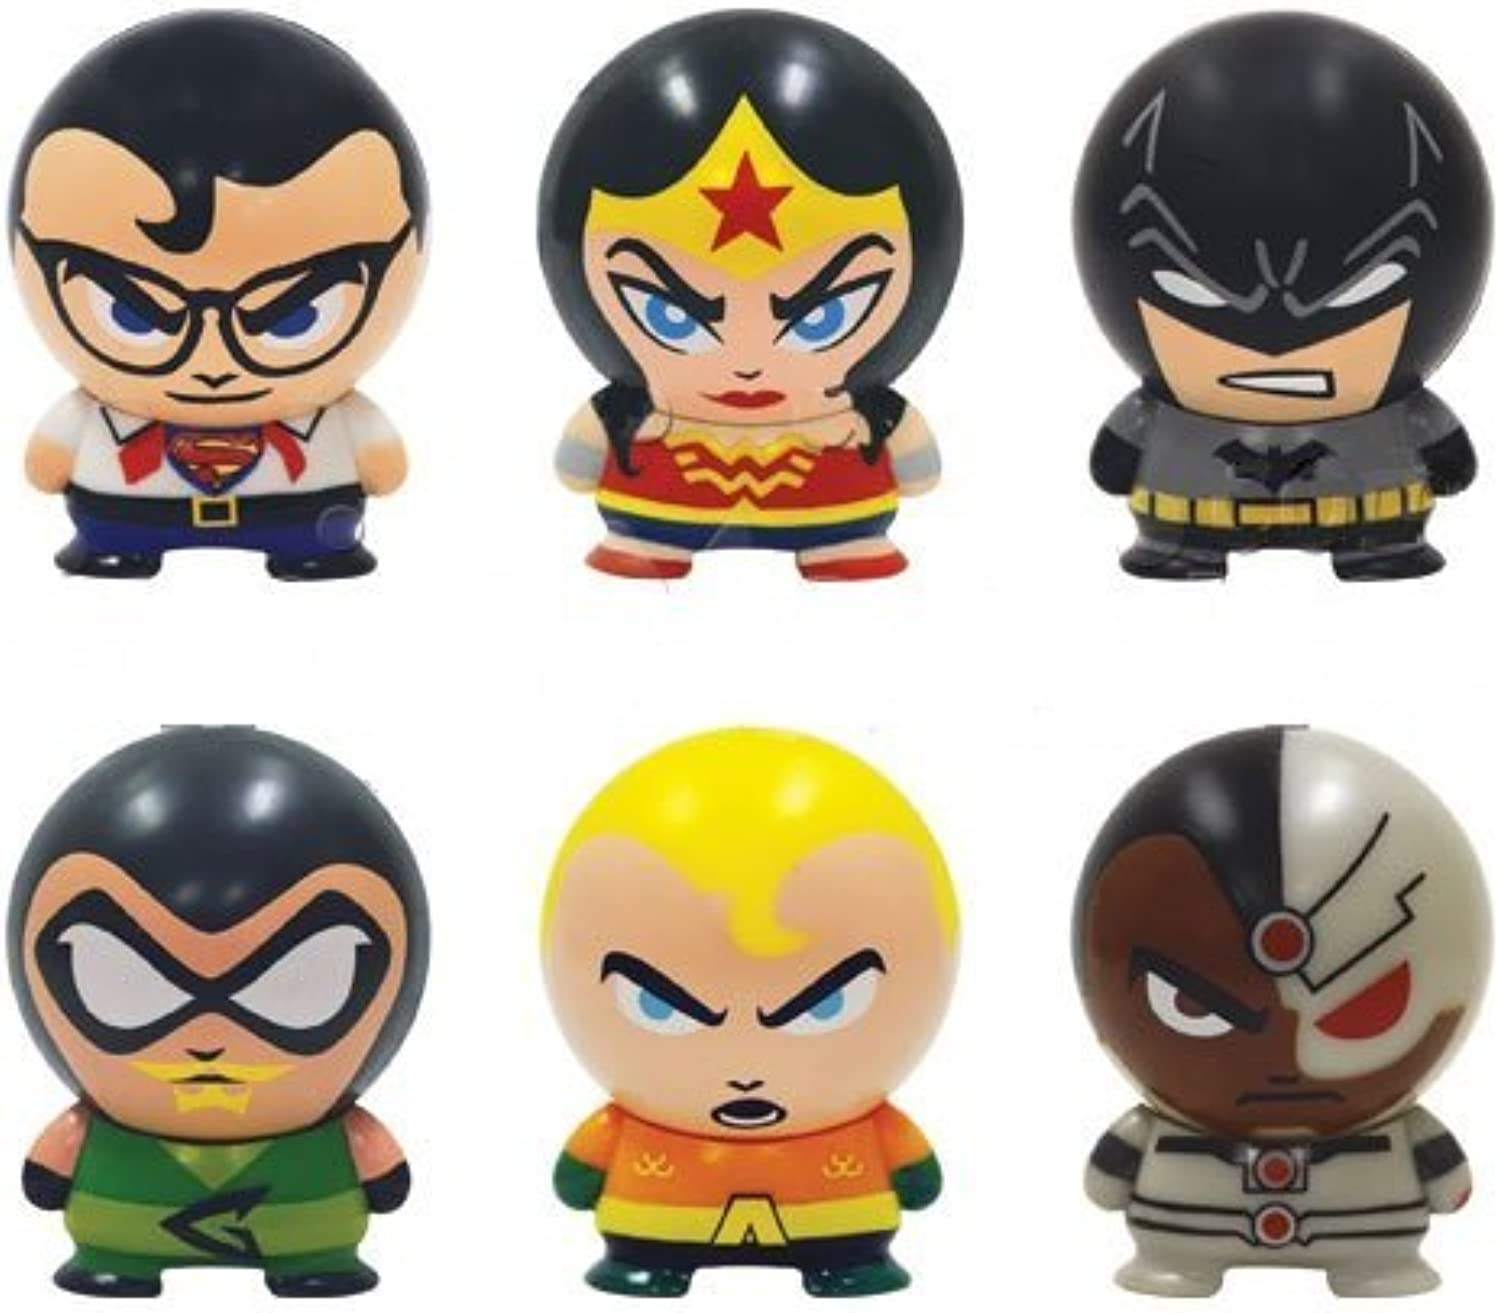 DC Comic Super Heroes Buildable mini figurines. Set of 6 by DC Comics